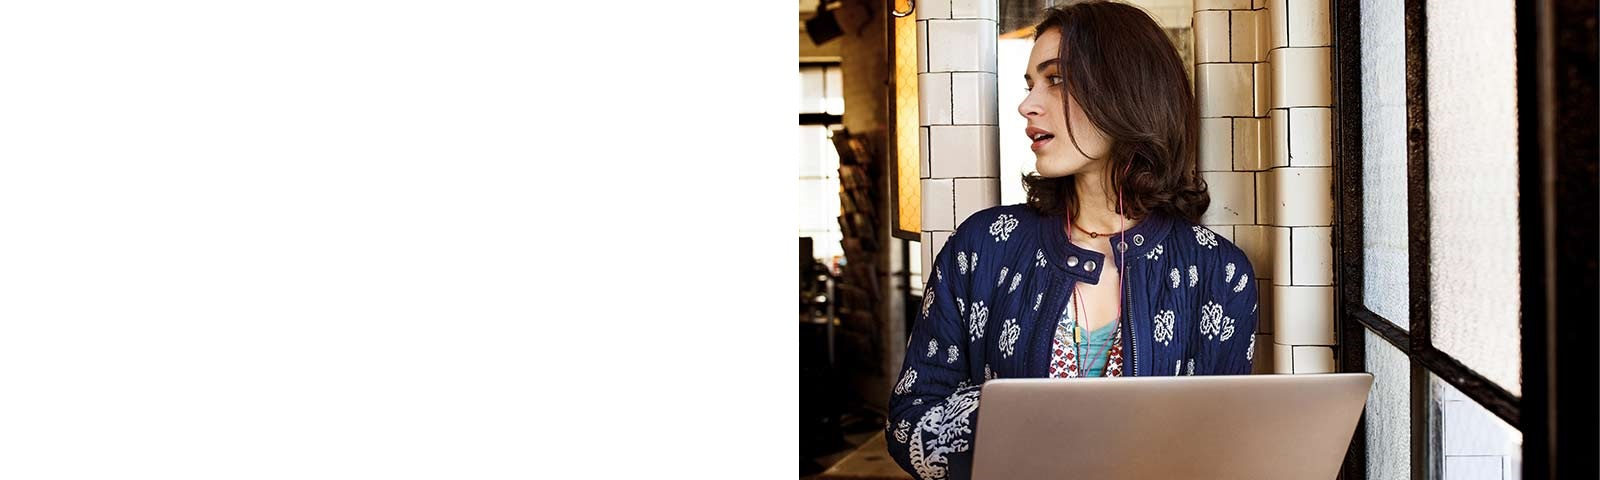 Woman in café with laptop and earbuds